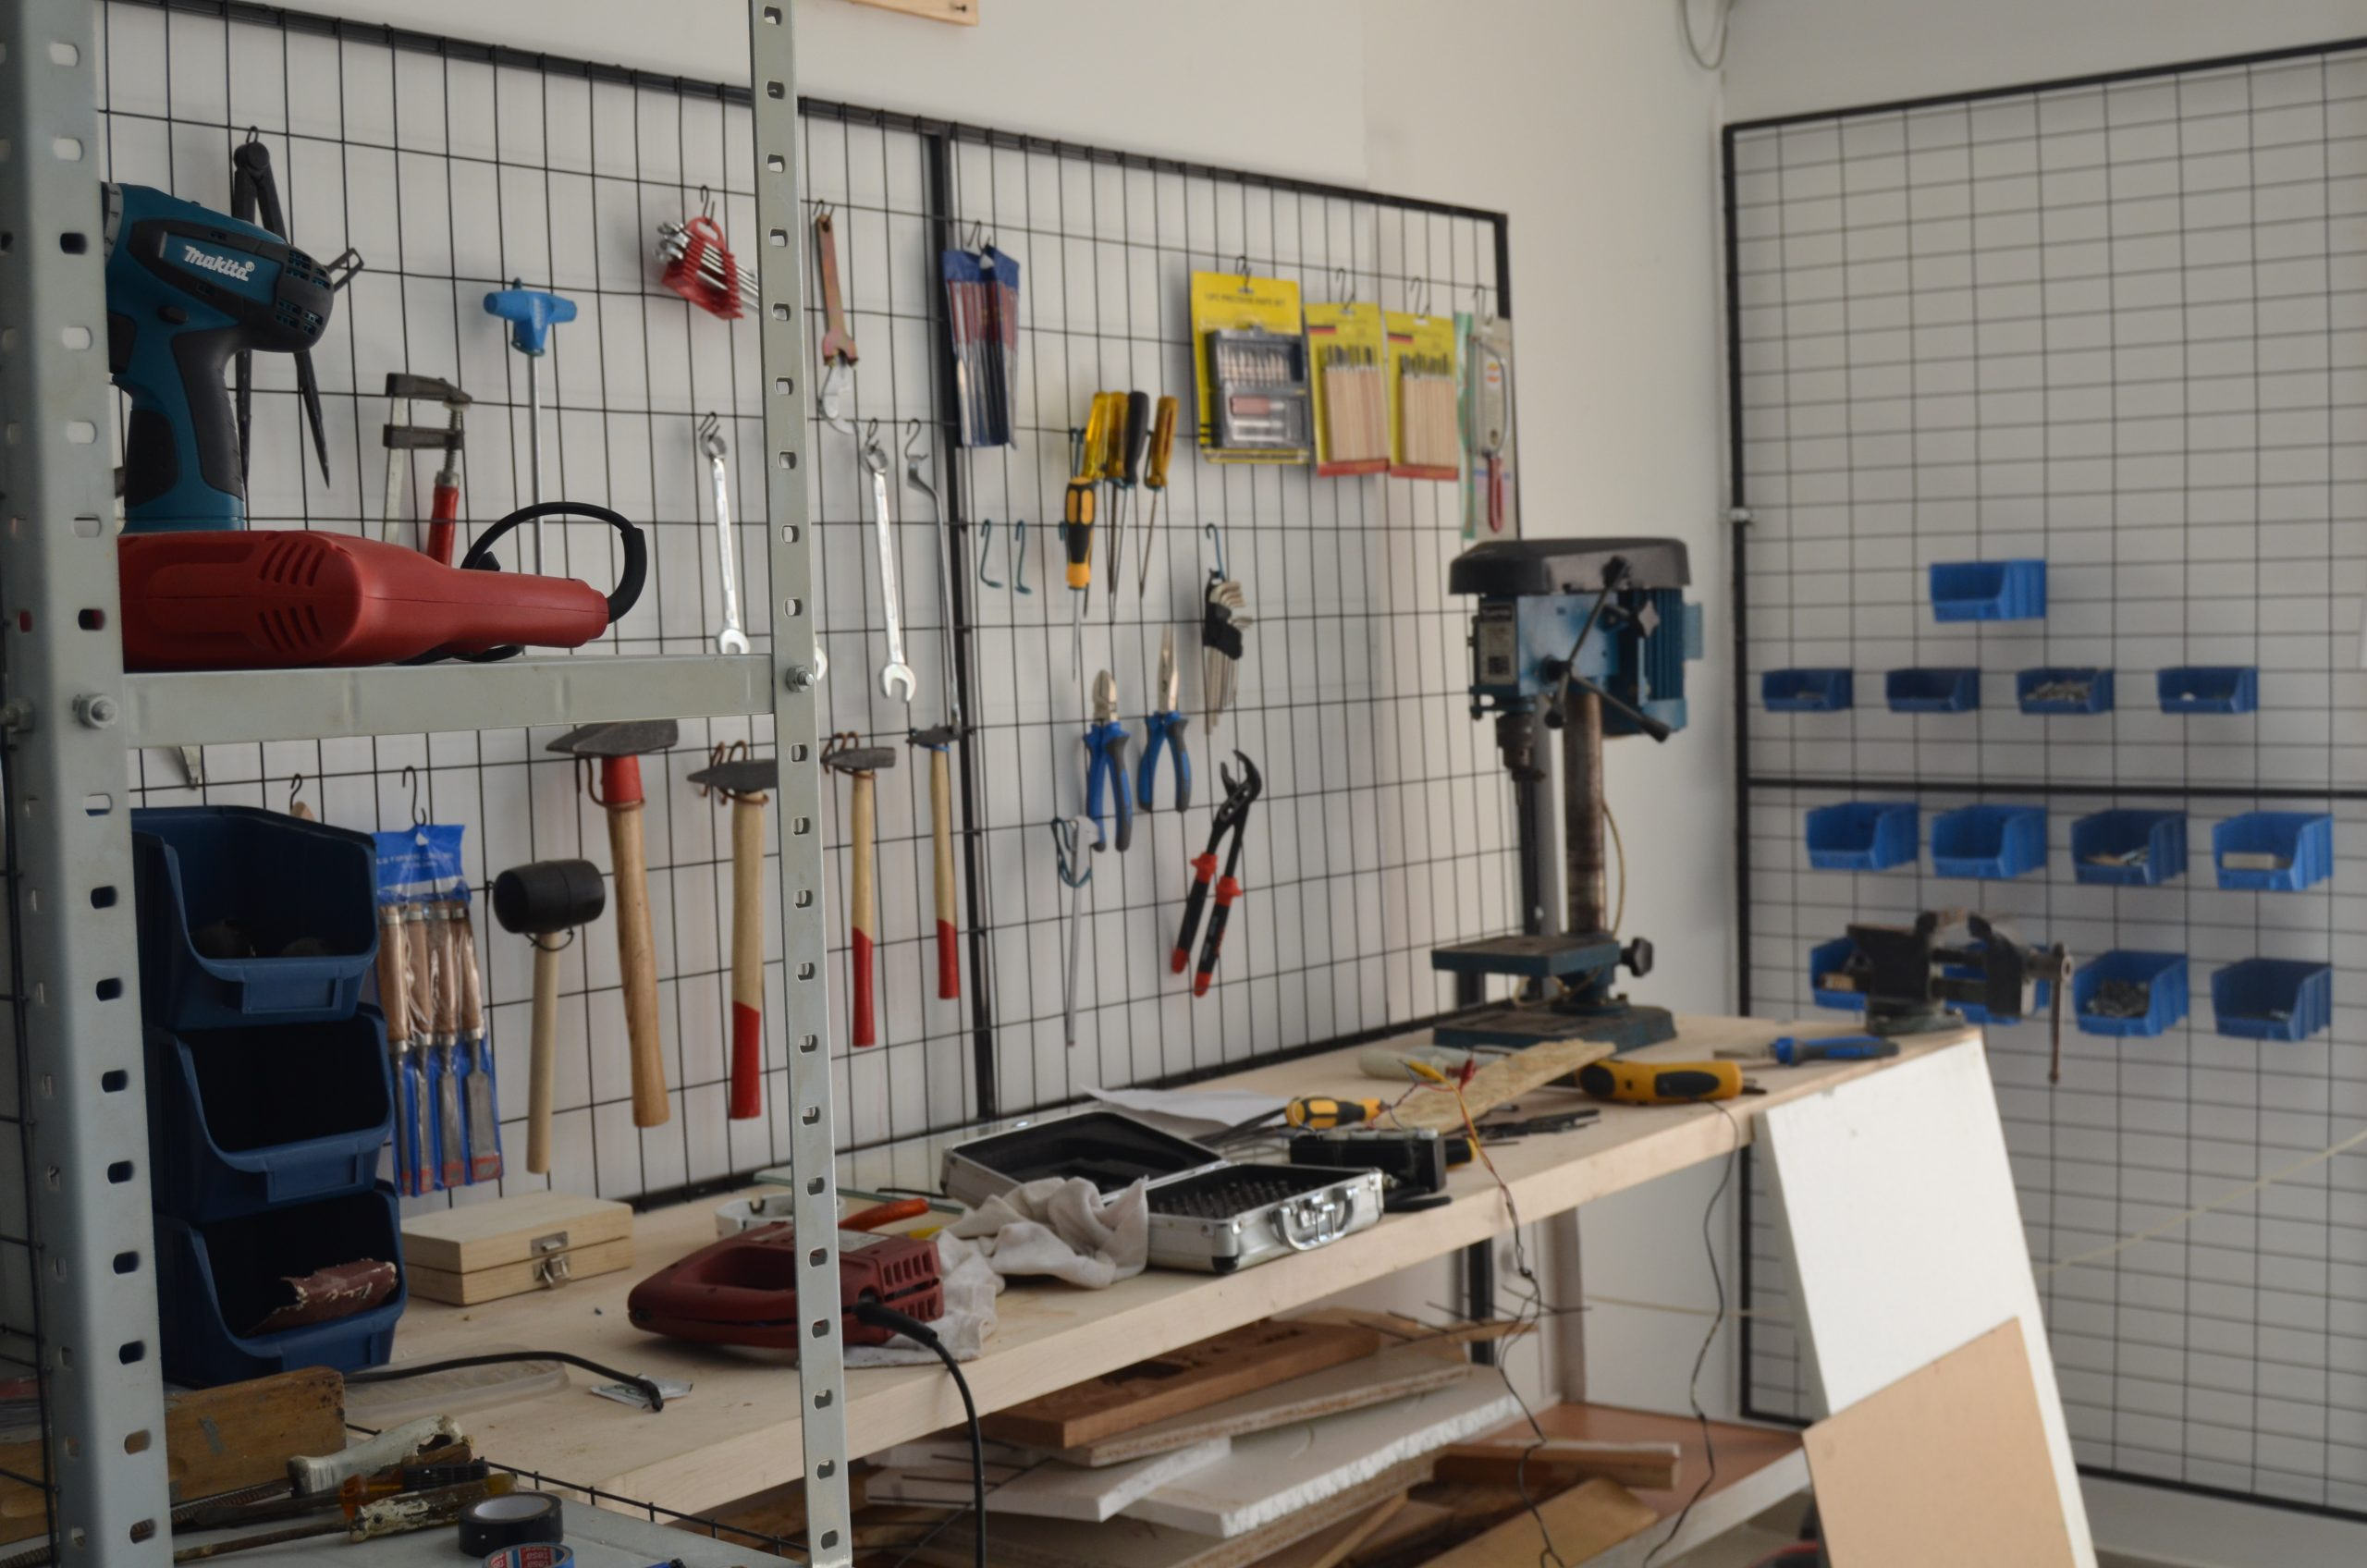 Workshop with tools hanging from the wall.